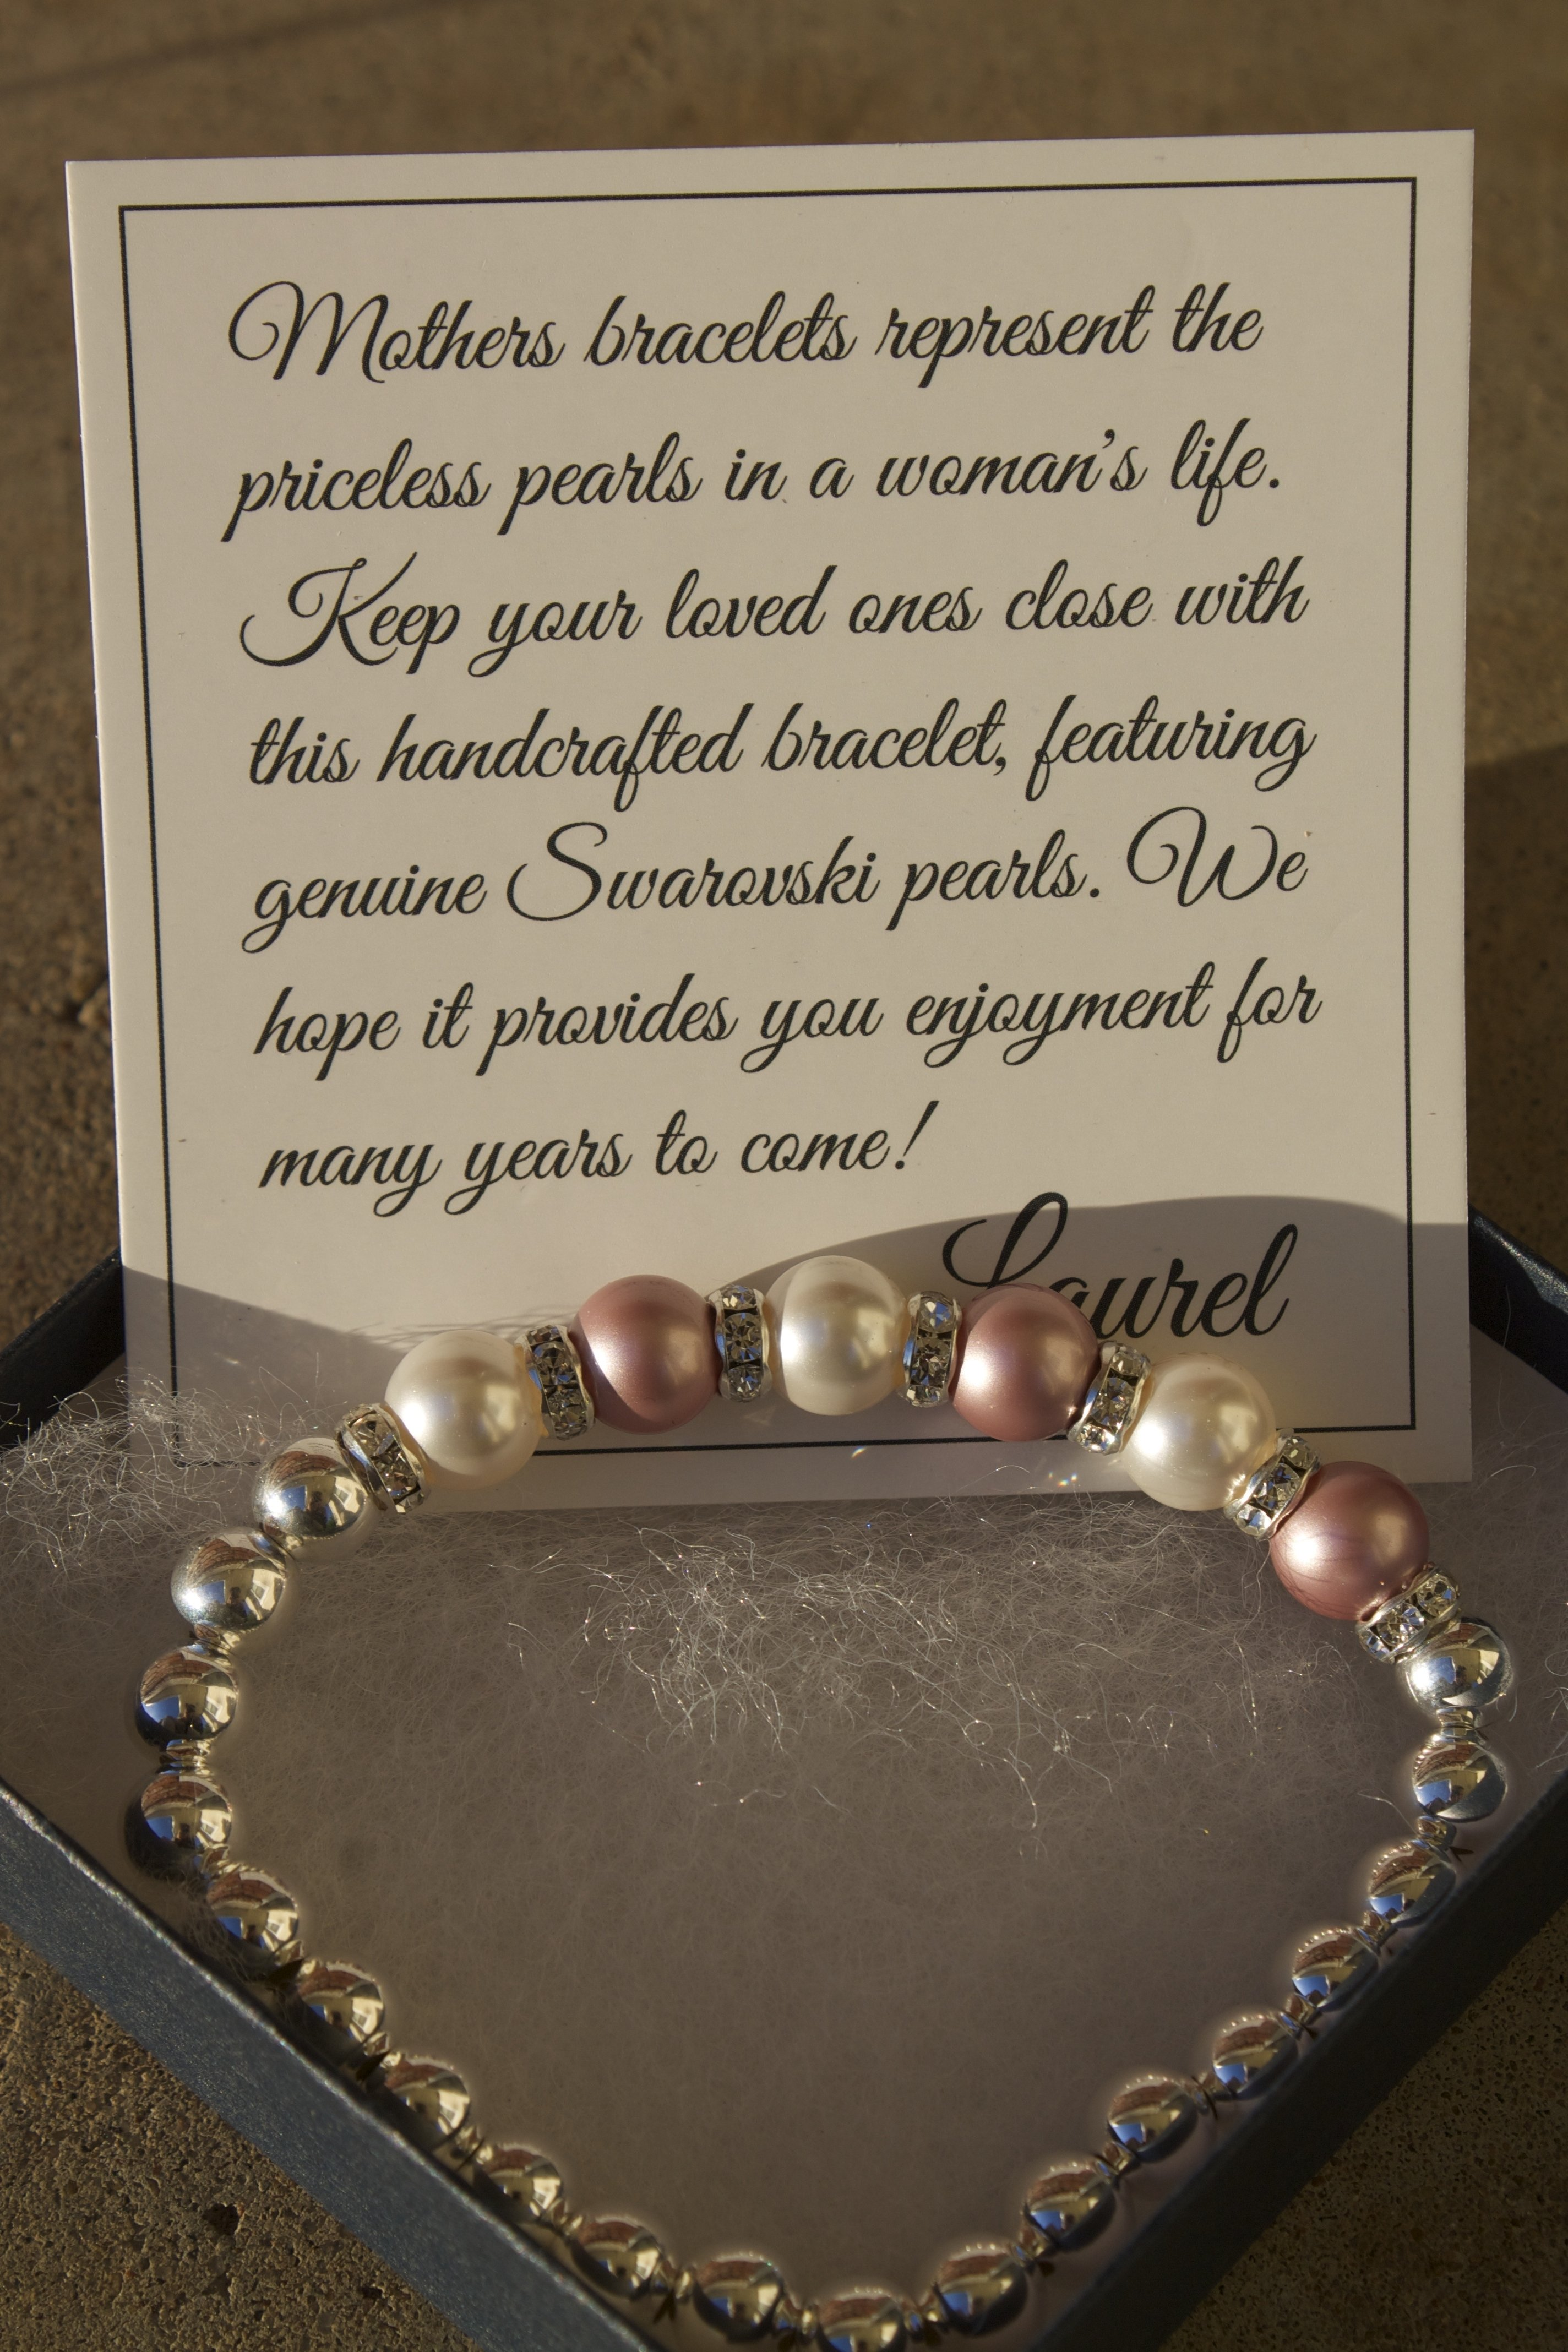 10 Beautiful Gift Ideas For Mother In Law perfect gift idea for mom 4 2020